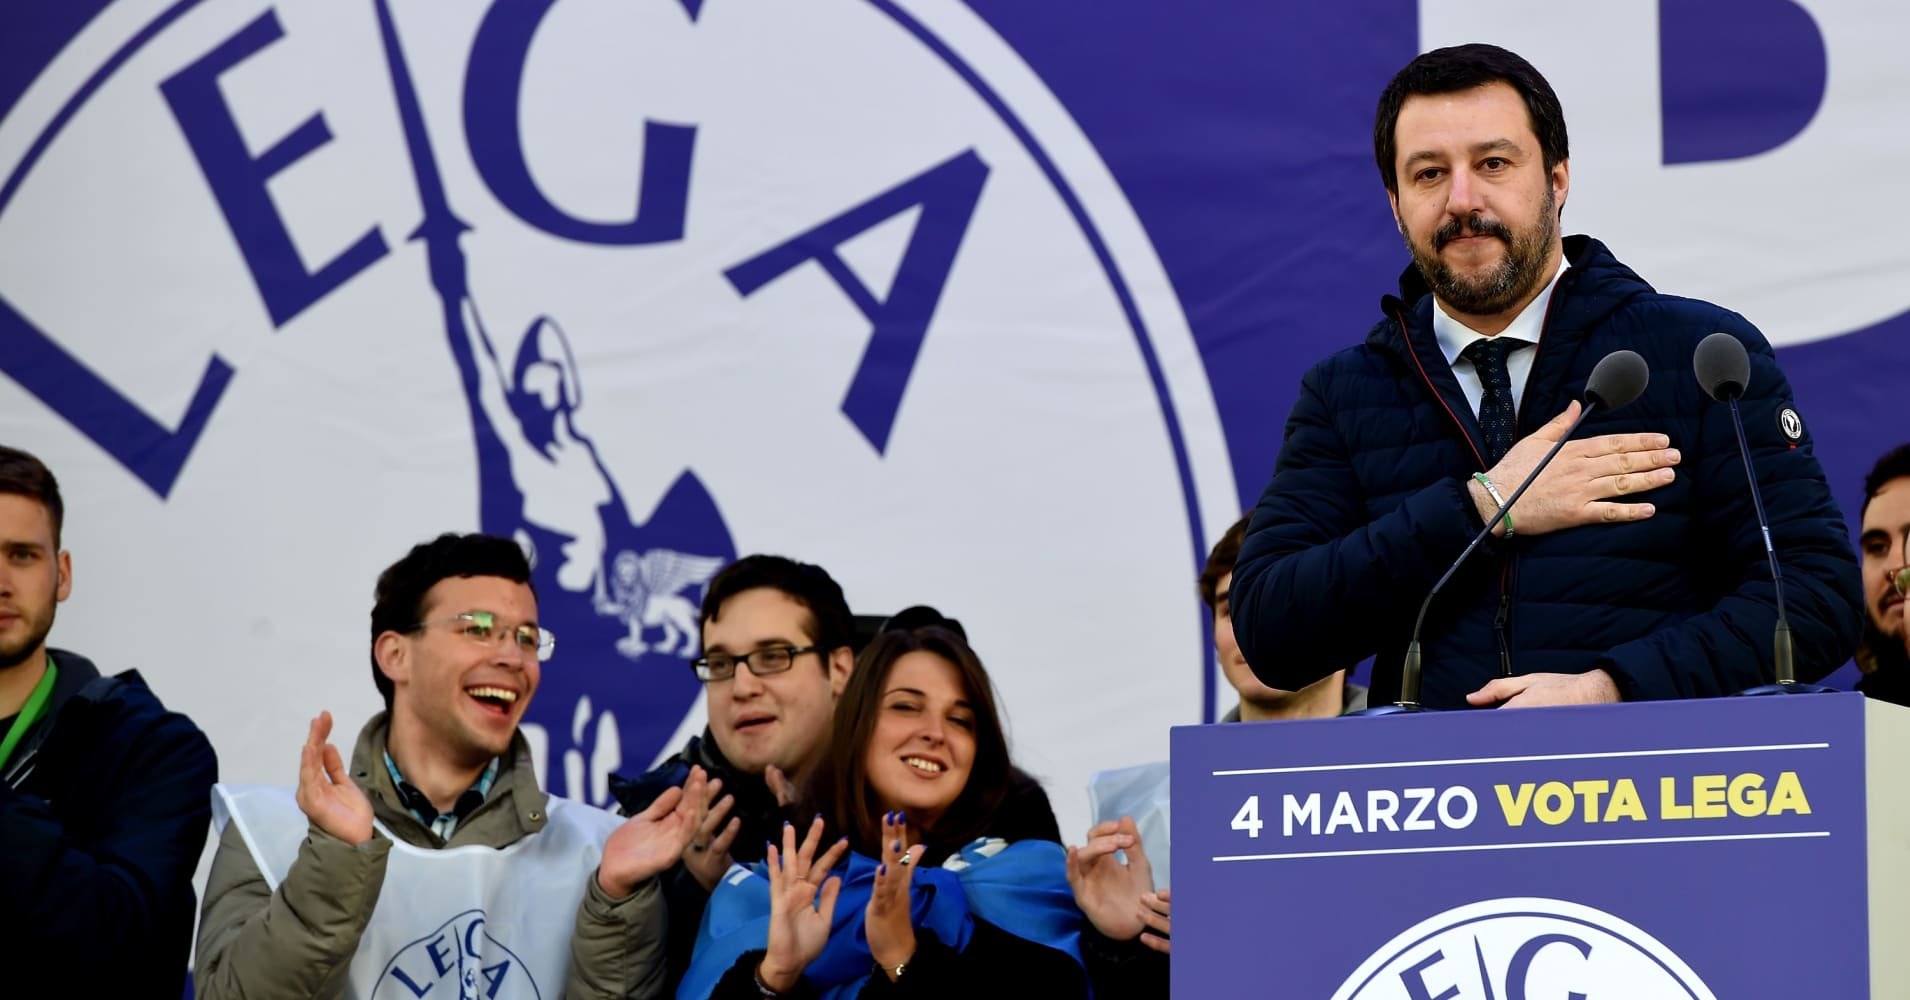 We want the 'war of words' with the EU over Italy's budget to end, Lega advisor says